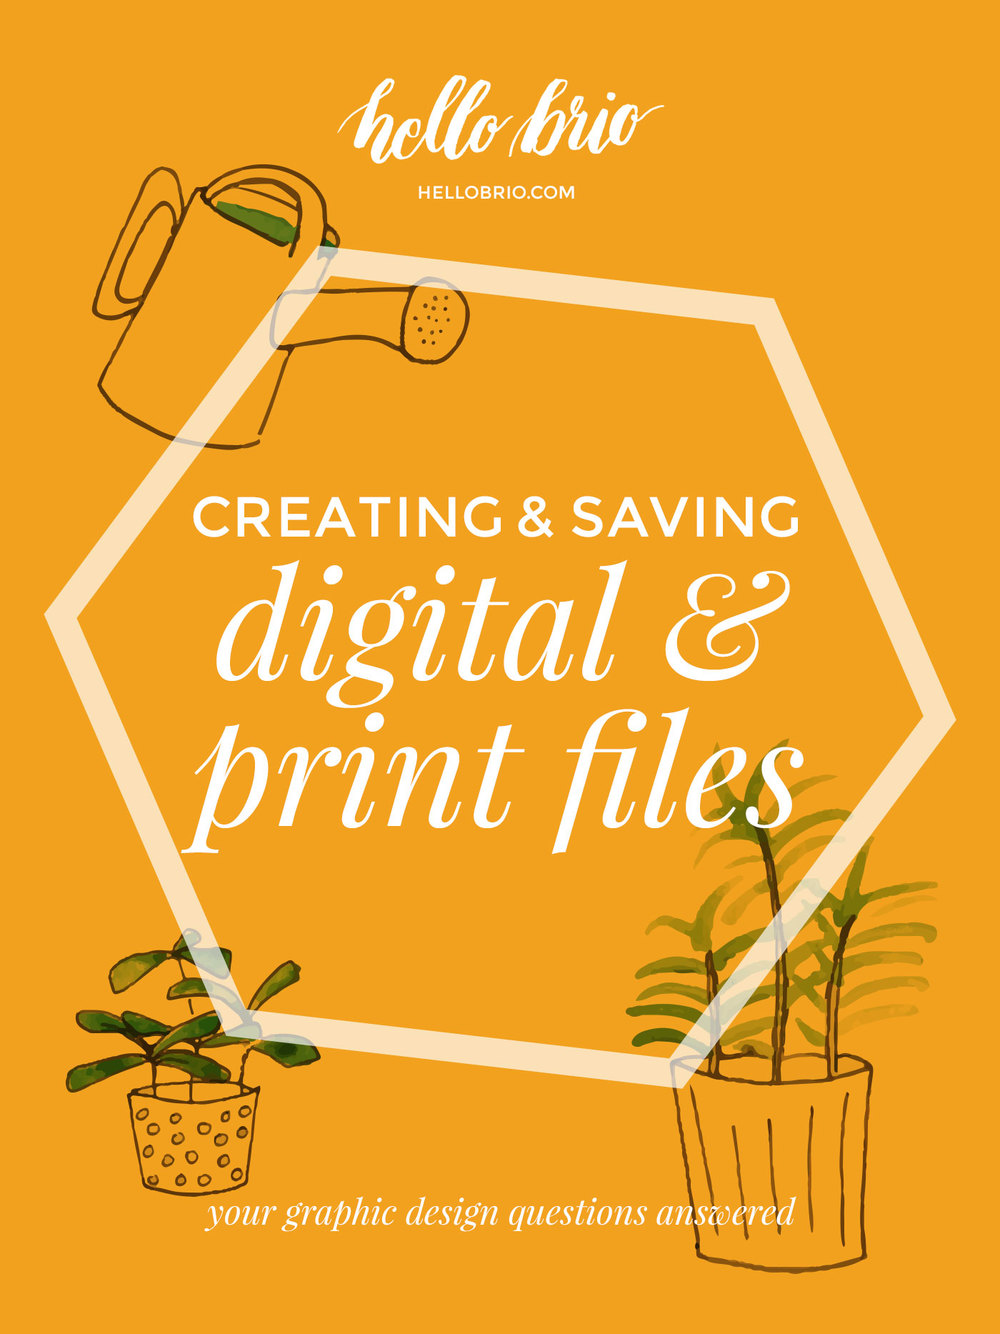 Best practices for creating and saving digital and print files for graphic design